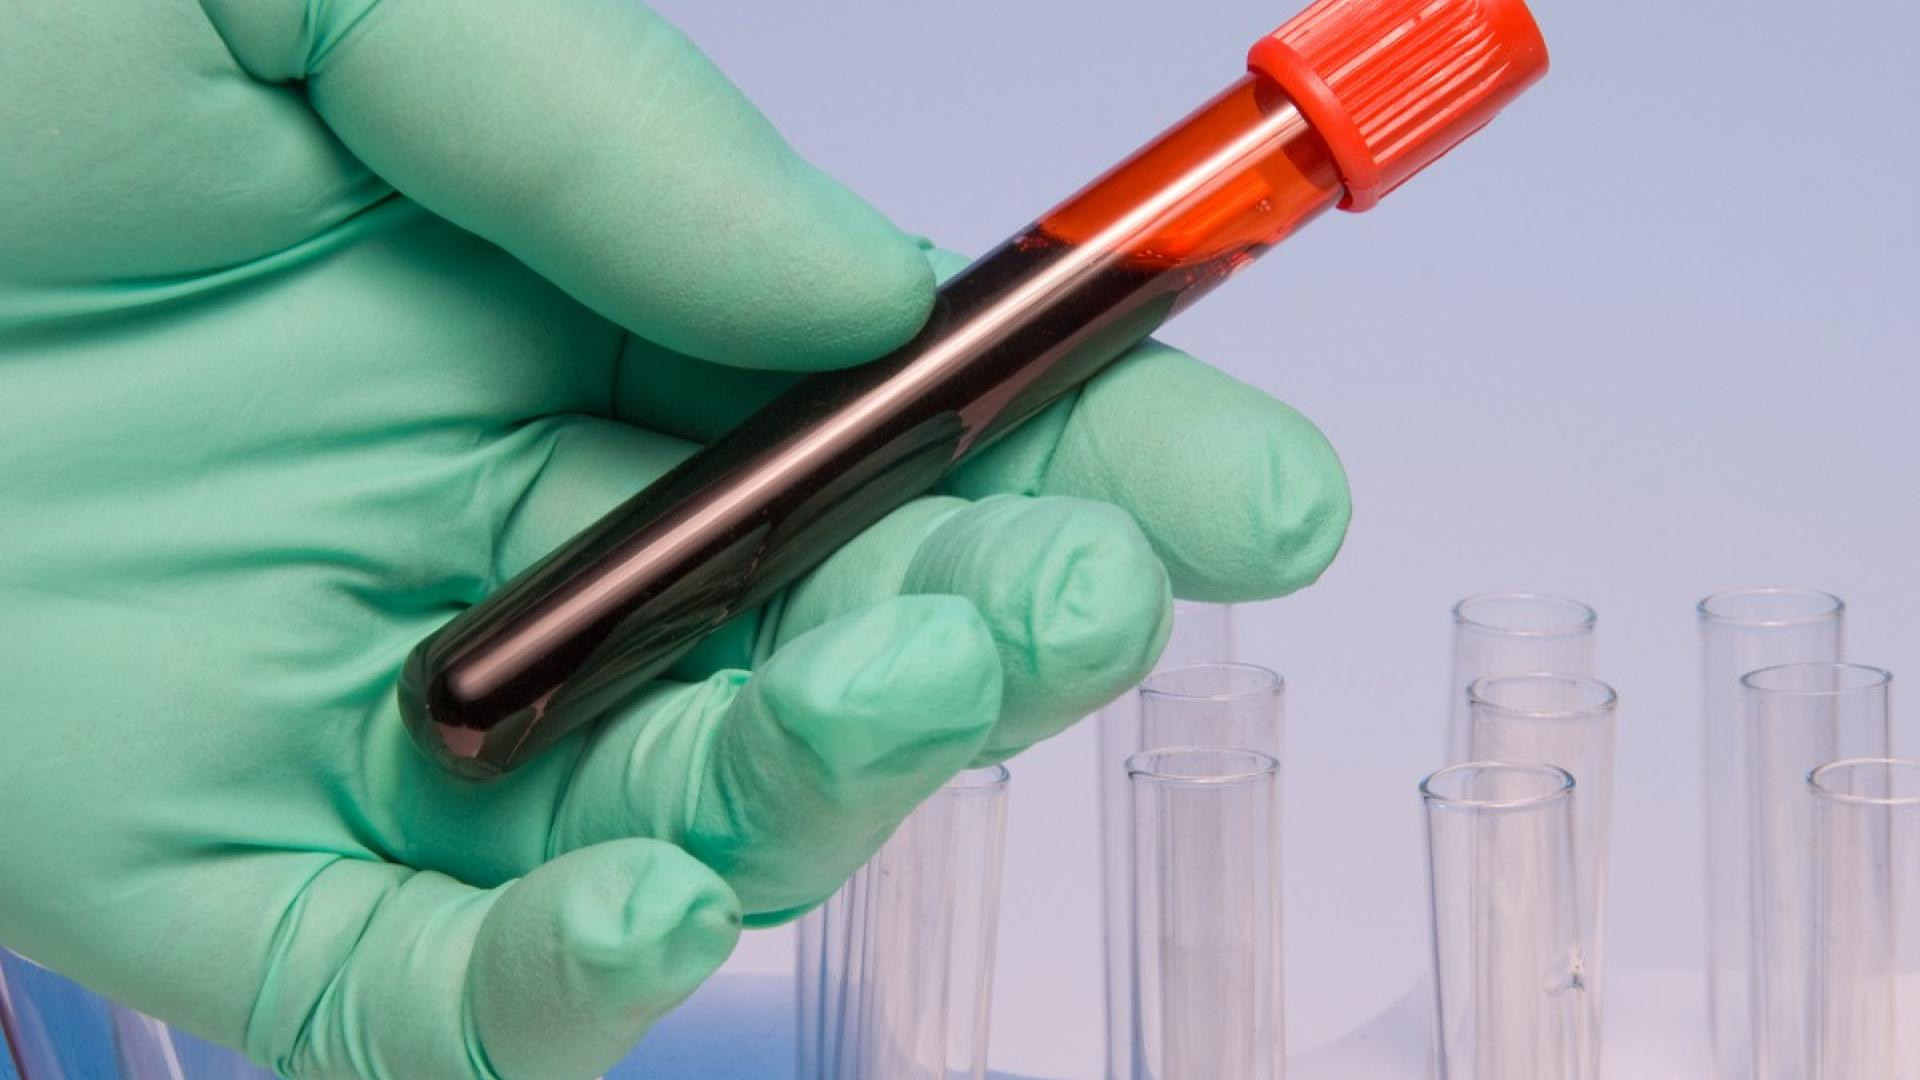 New blood test developed to diagnose Parkinson's disease